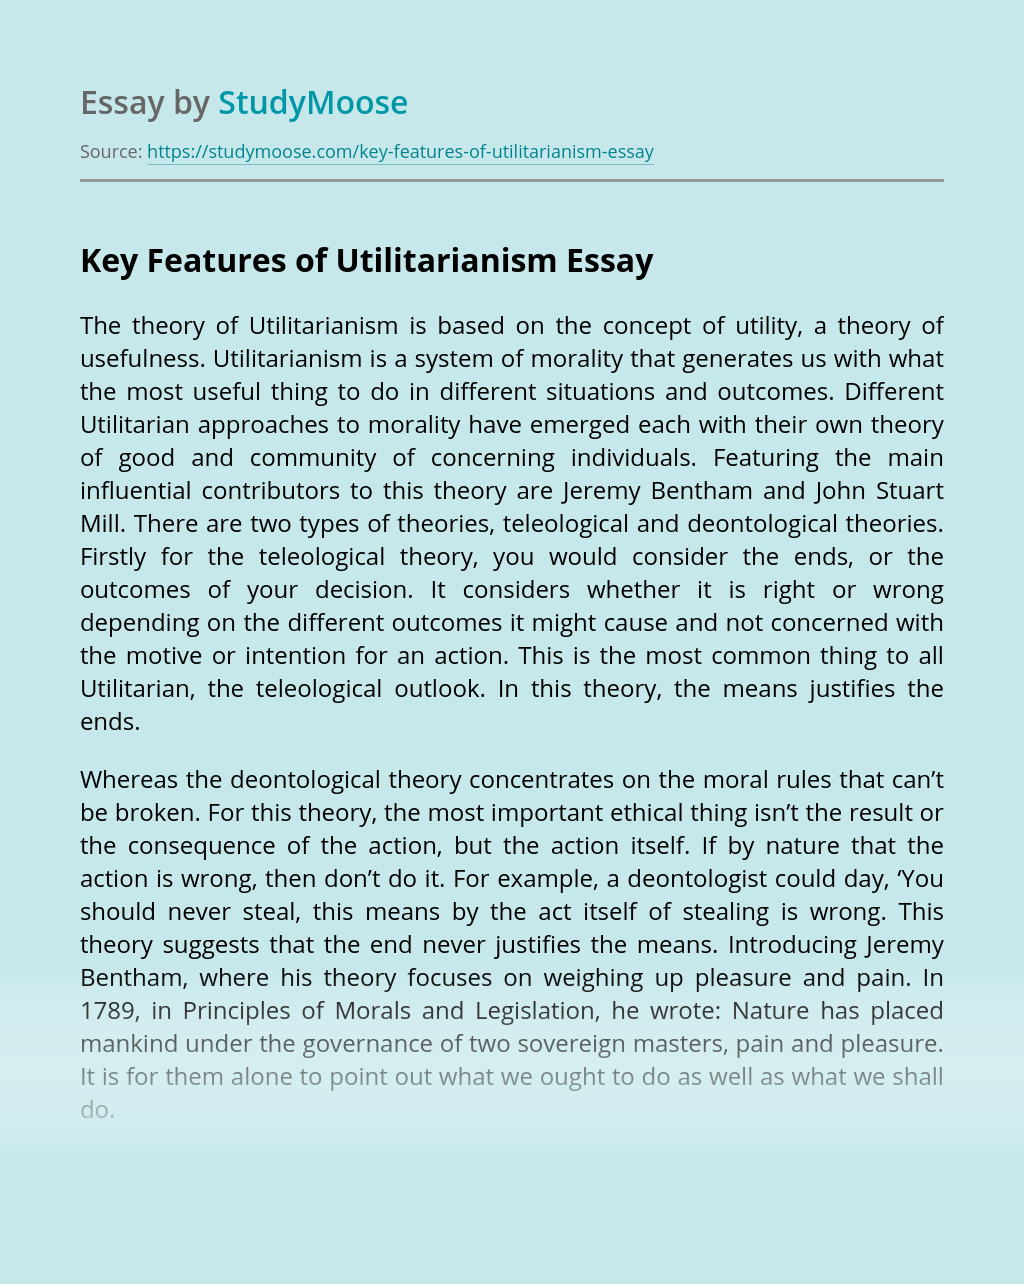 Key Features of Utilitarianism